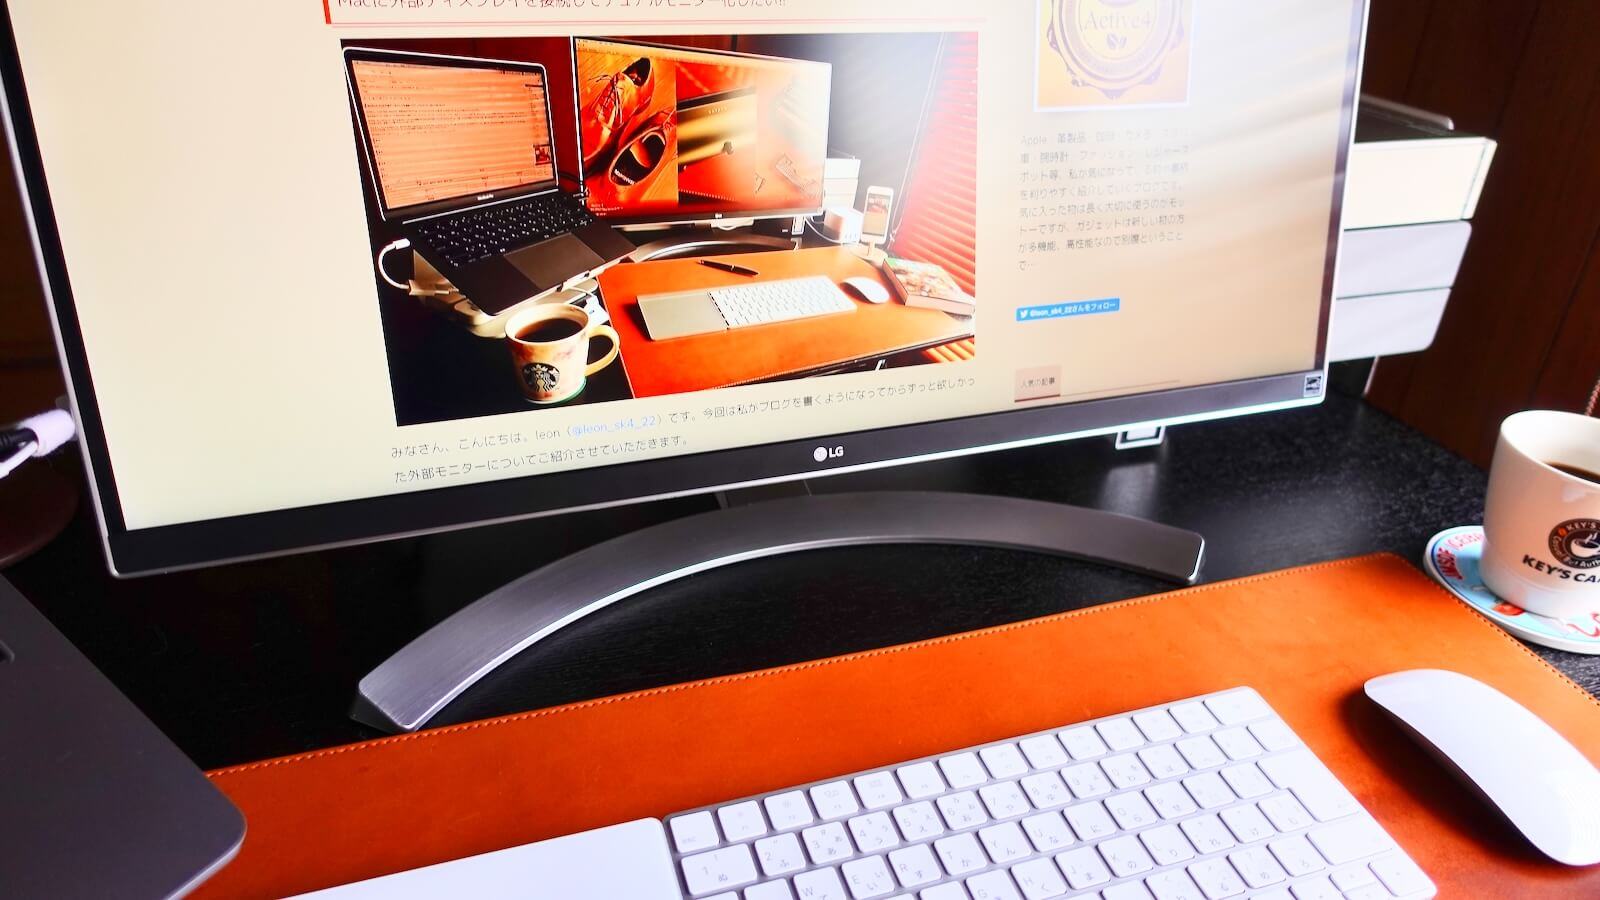 LG27UD88-W 4K monitor attached stand